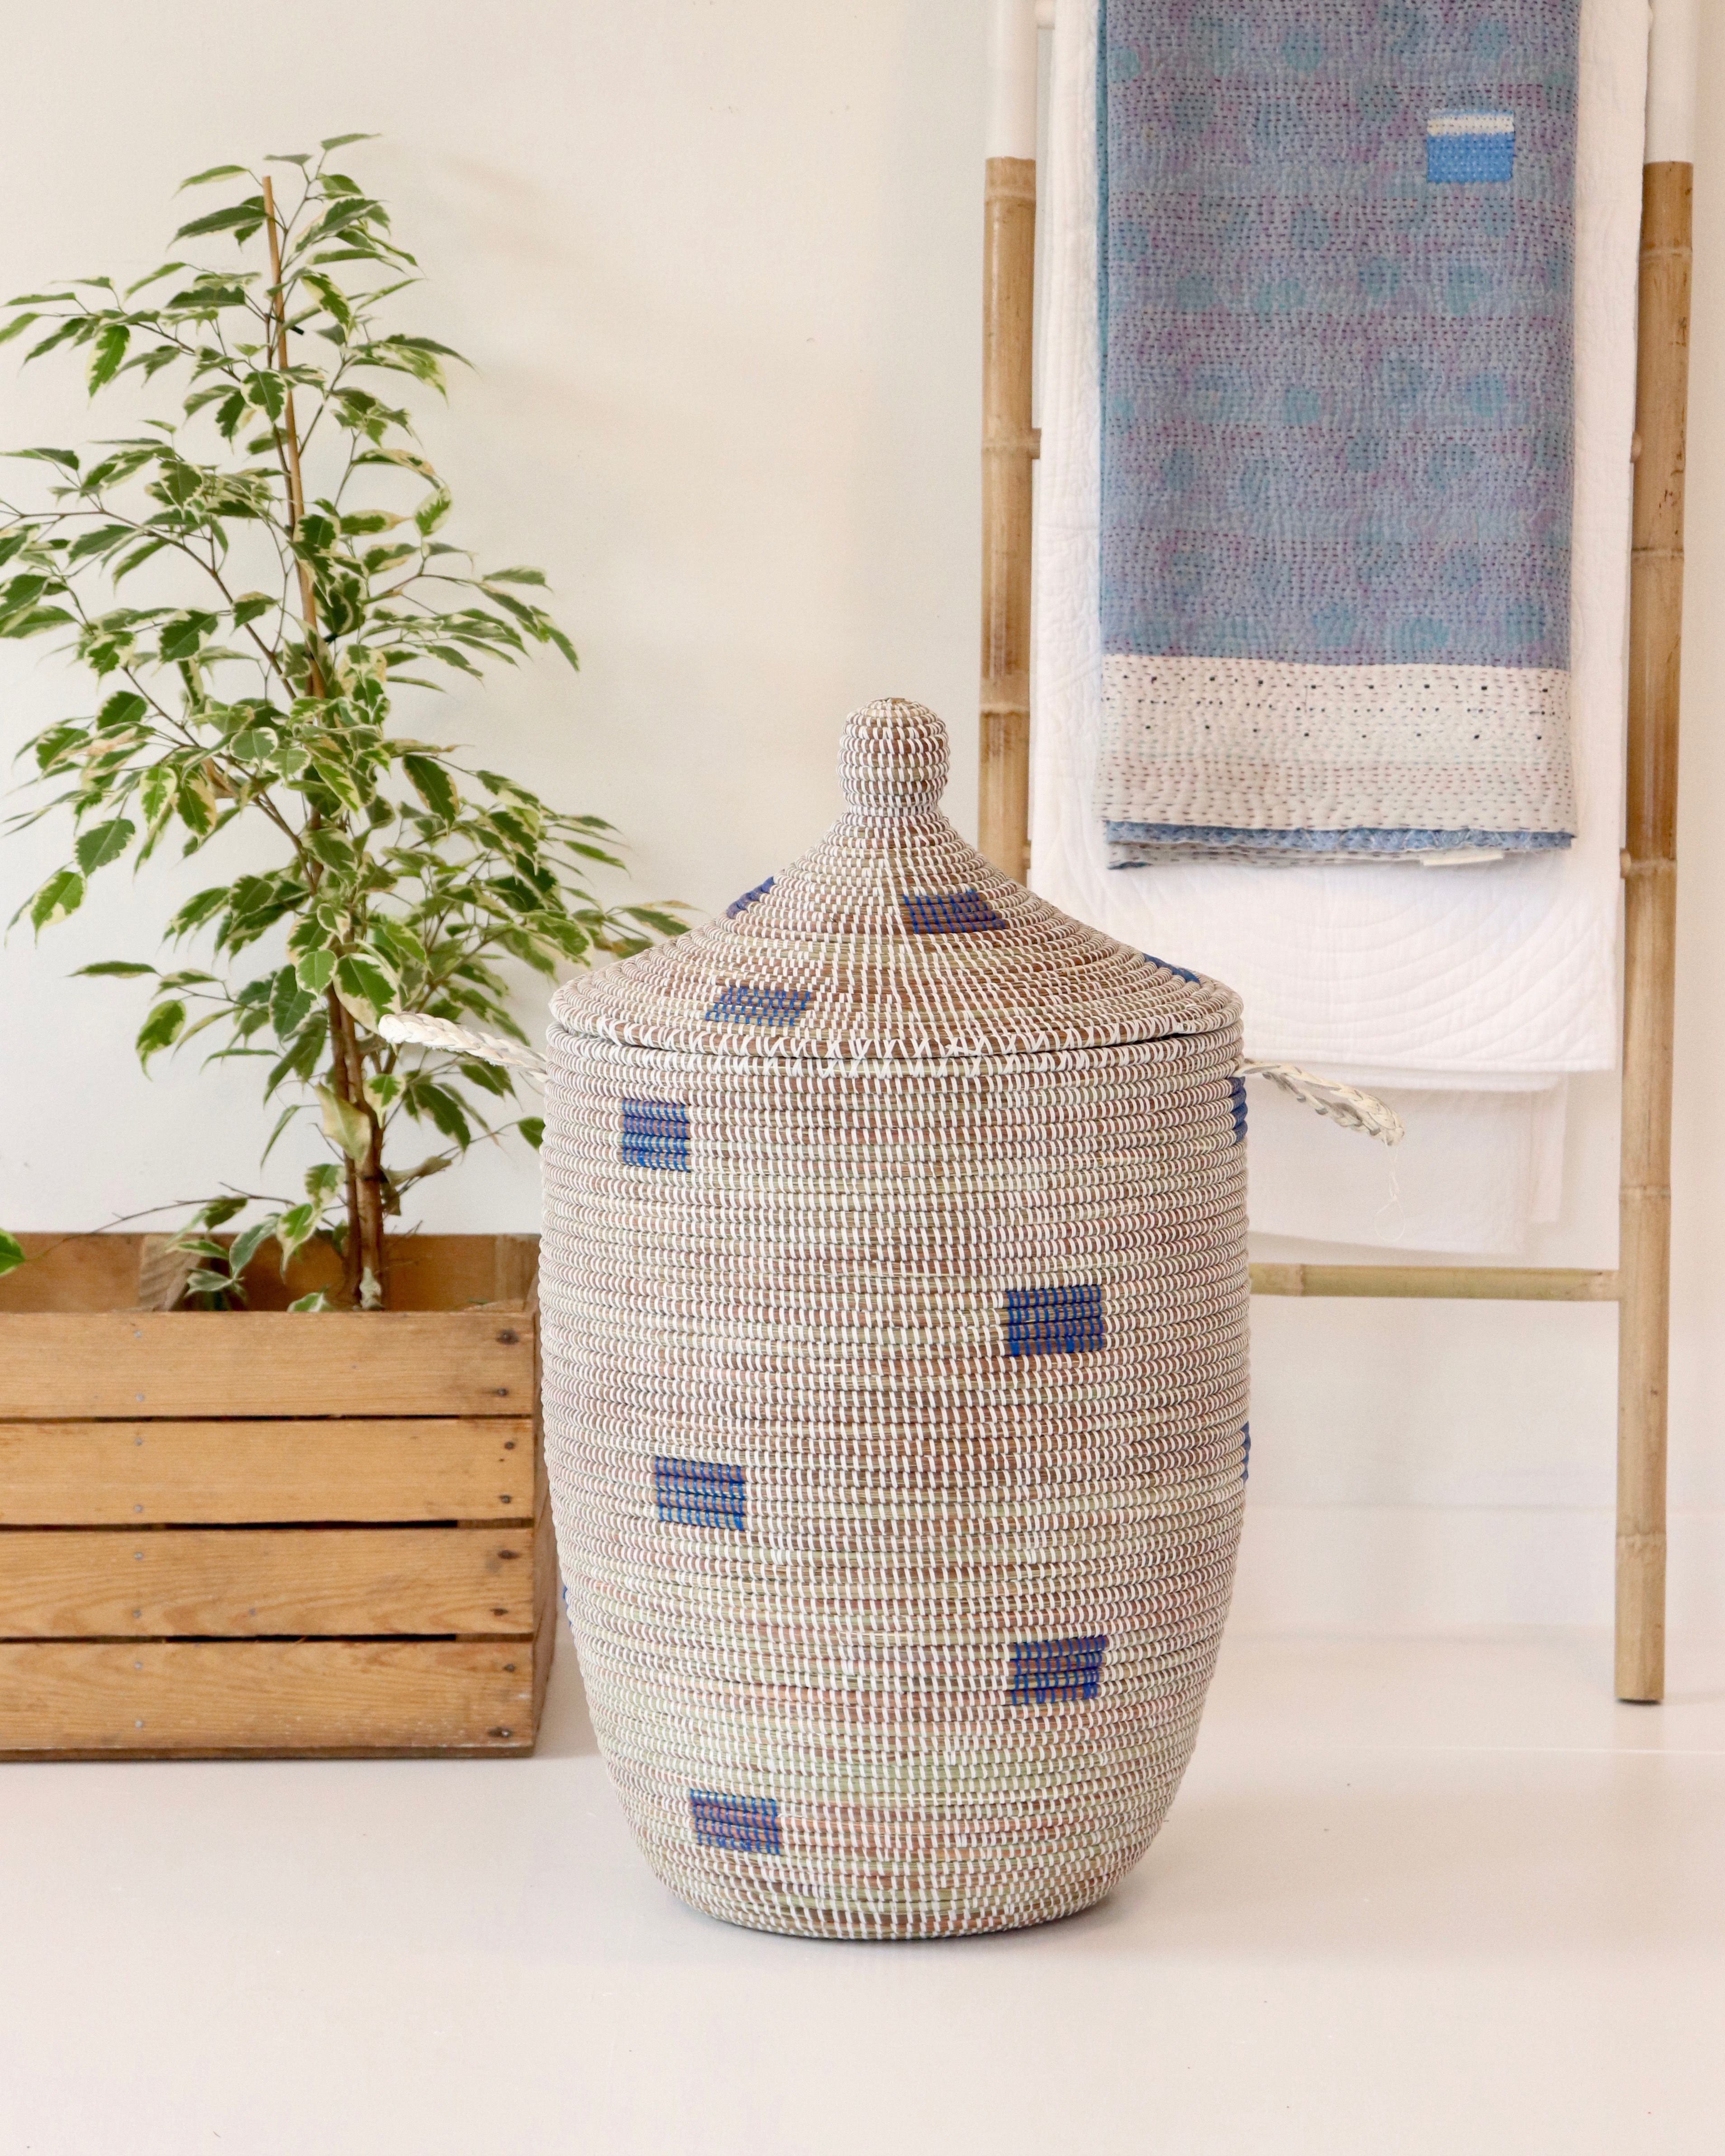 Hand Woven Laundry Baskets Made In Senegal Smart Beautiful